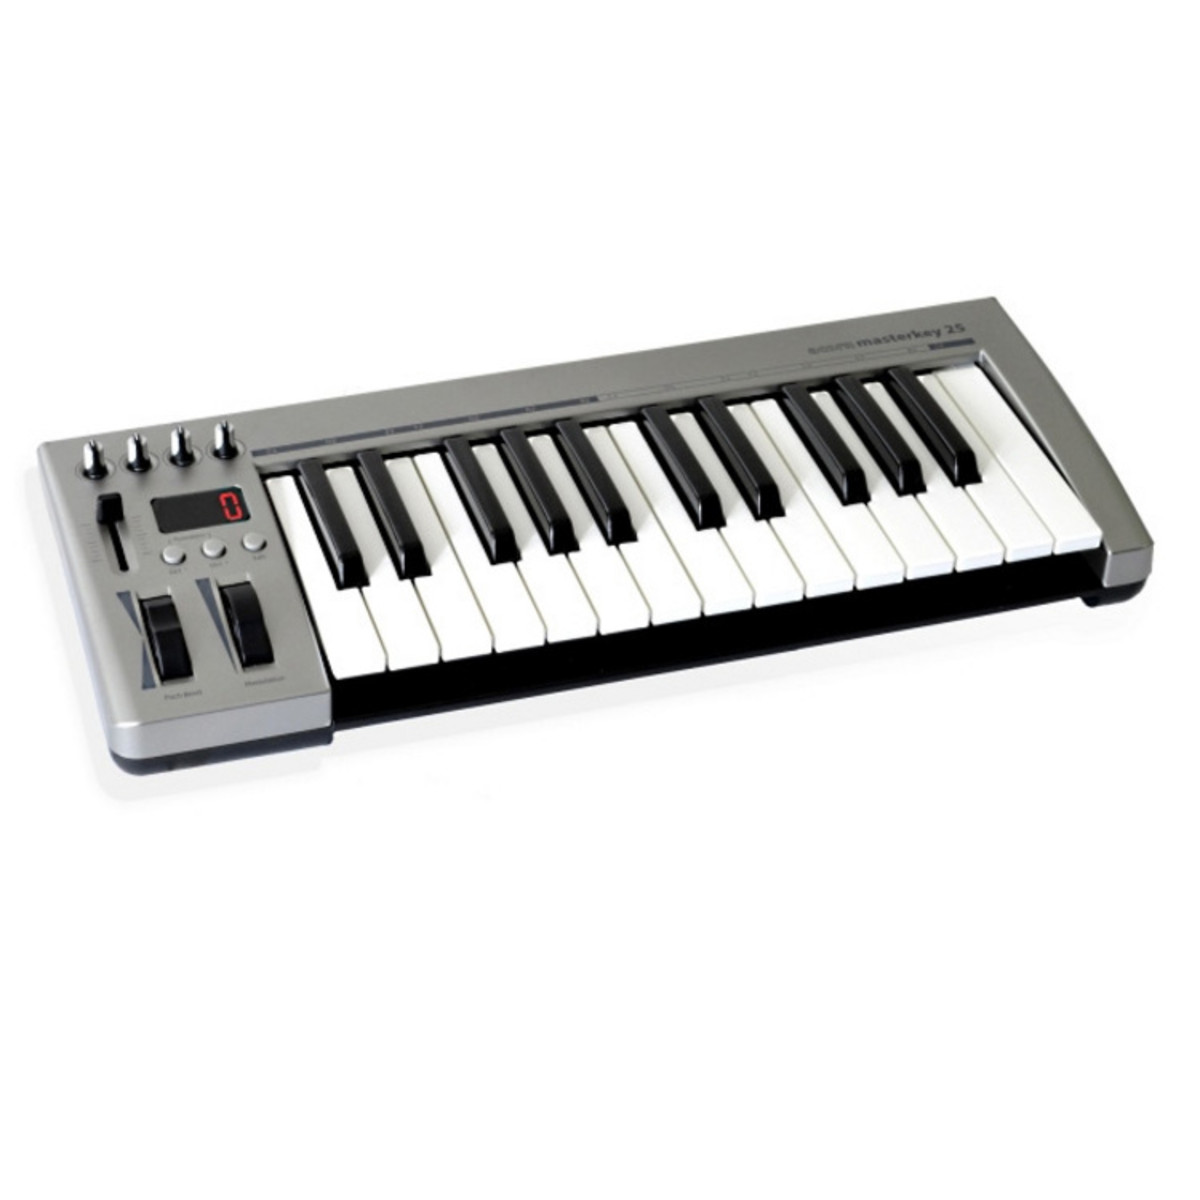 Image of Acorn Instruments MasterKey 25 Key USB MIDI Keyboard